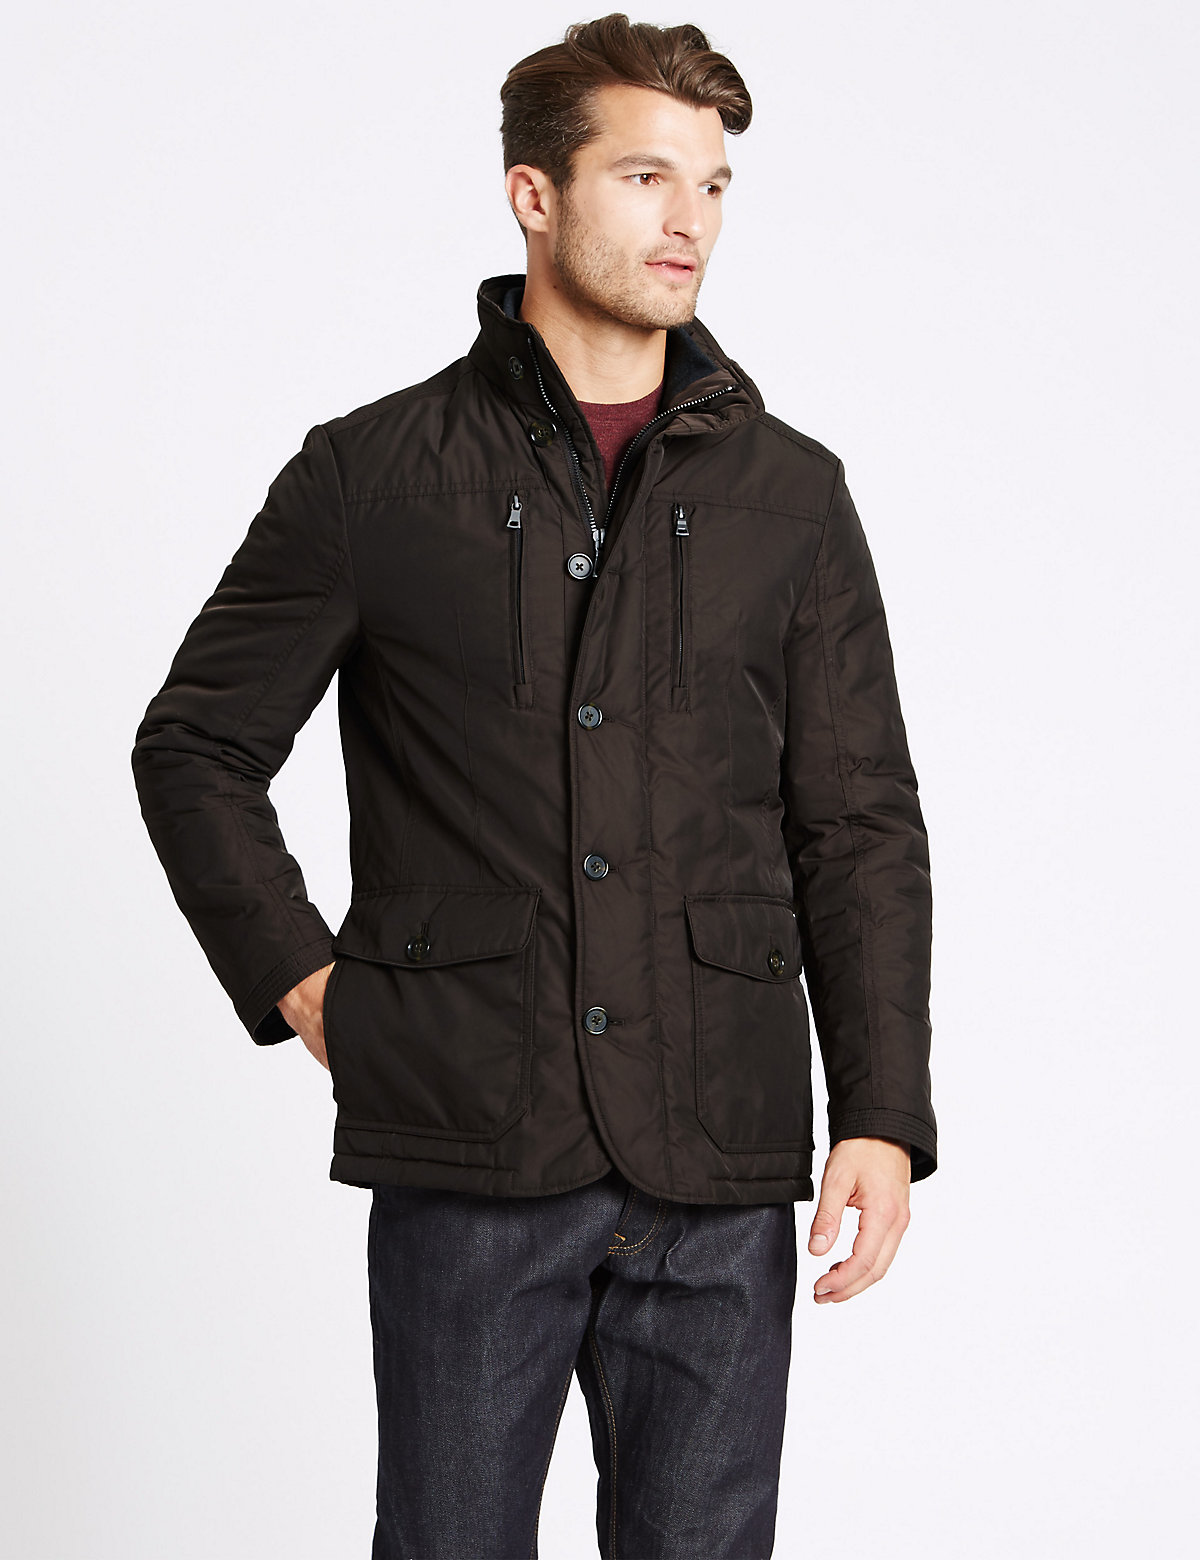 M&S Collection Jacket with Stormwear & Thinsulate